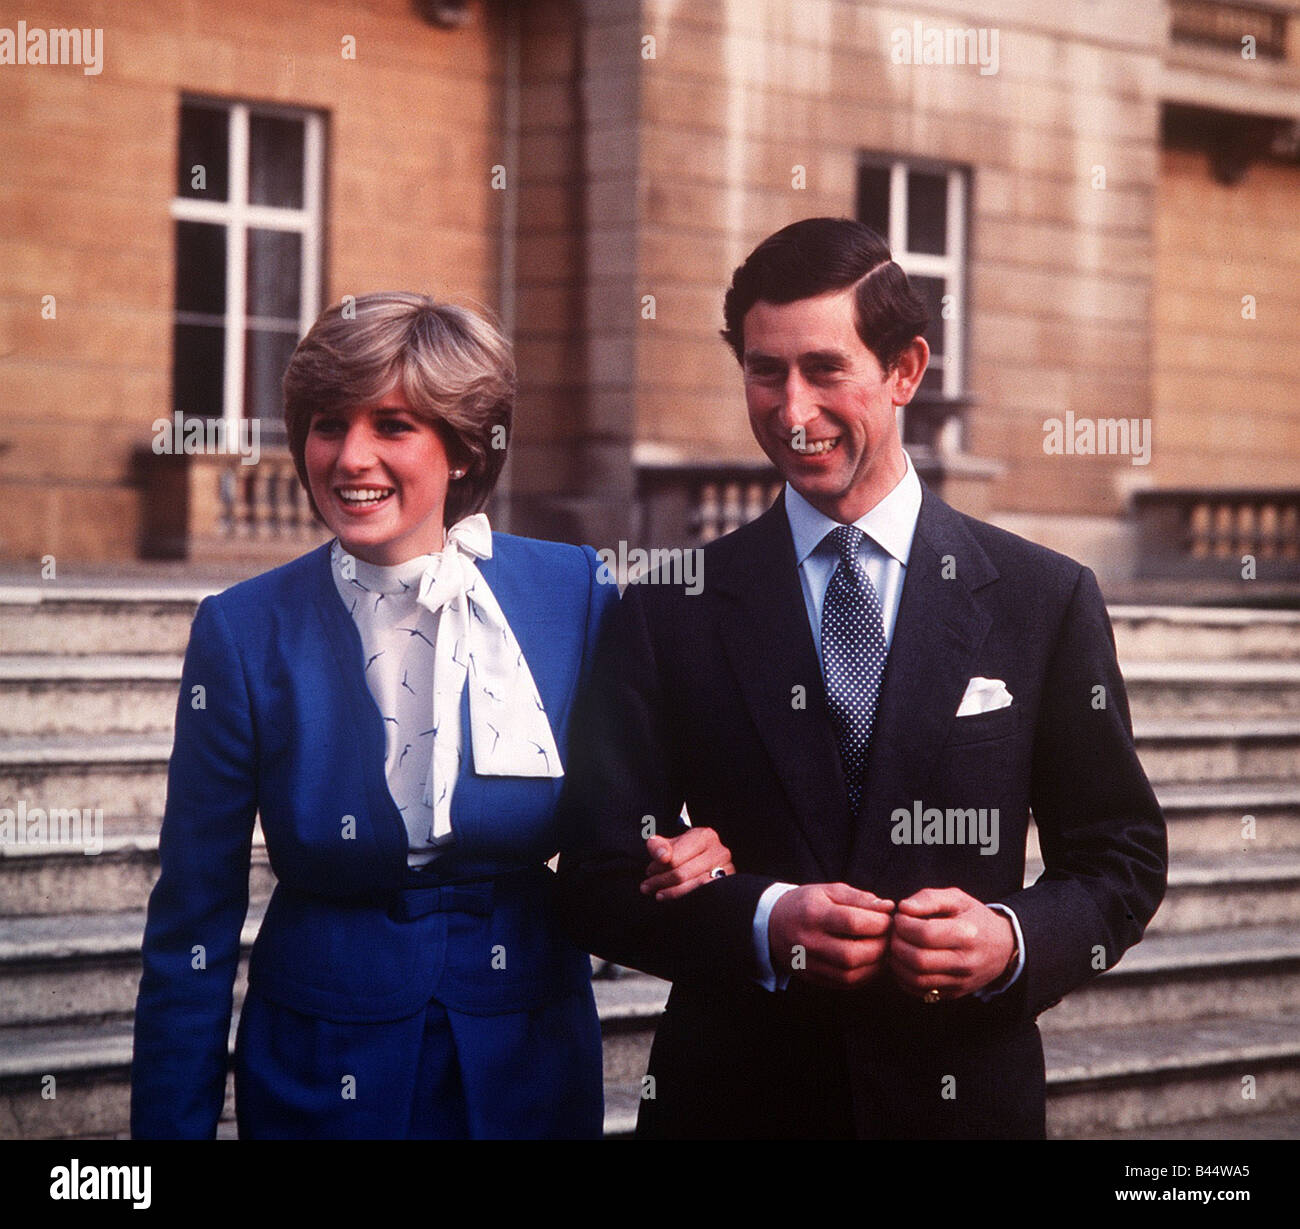 the engagement of prince charles and lady diana spencer february 1981 stock photo alamy alamy